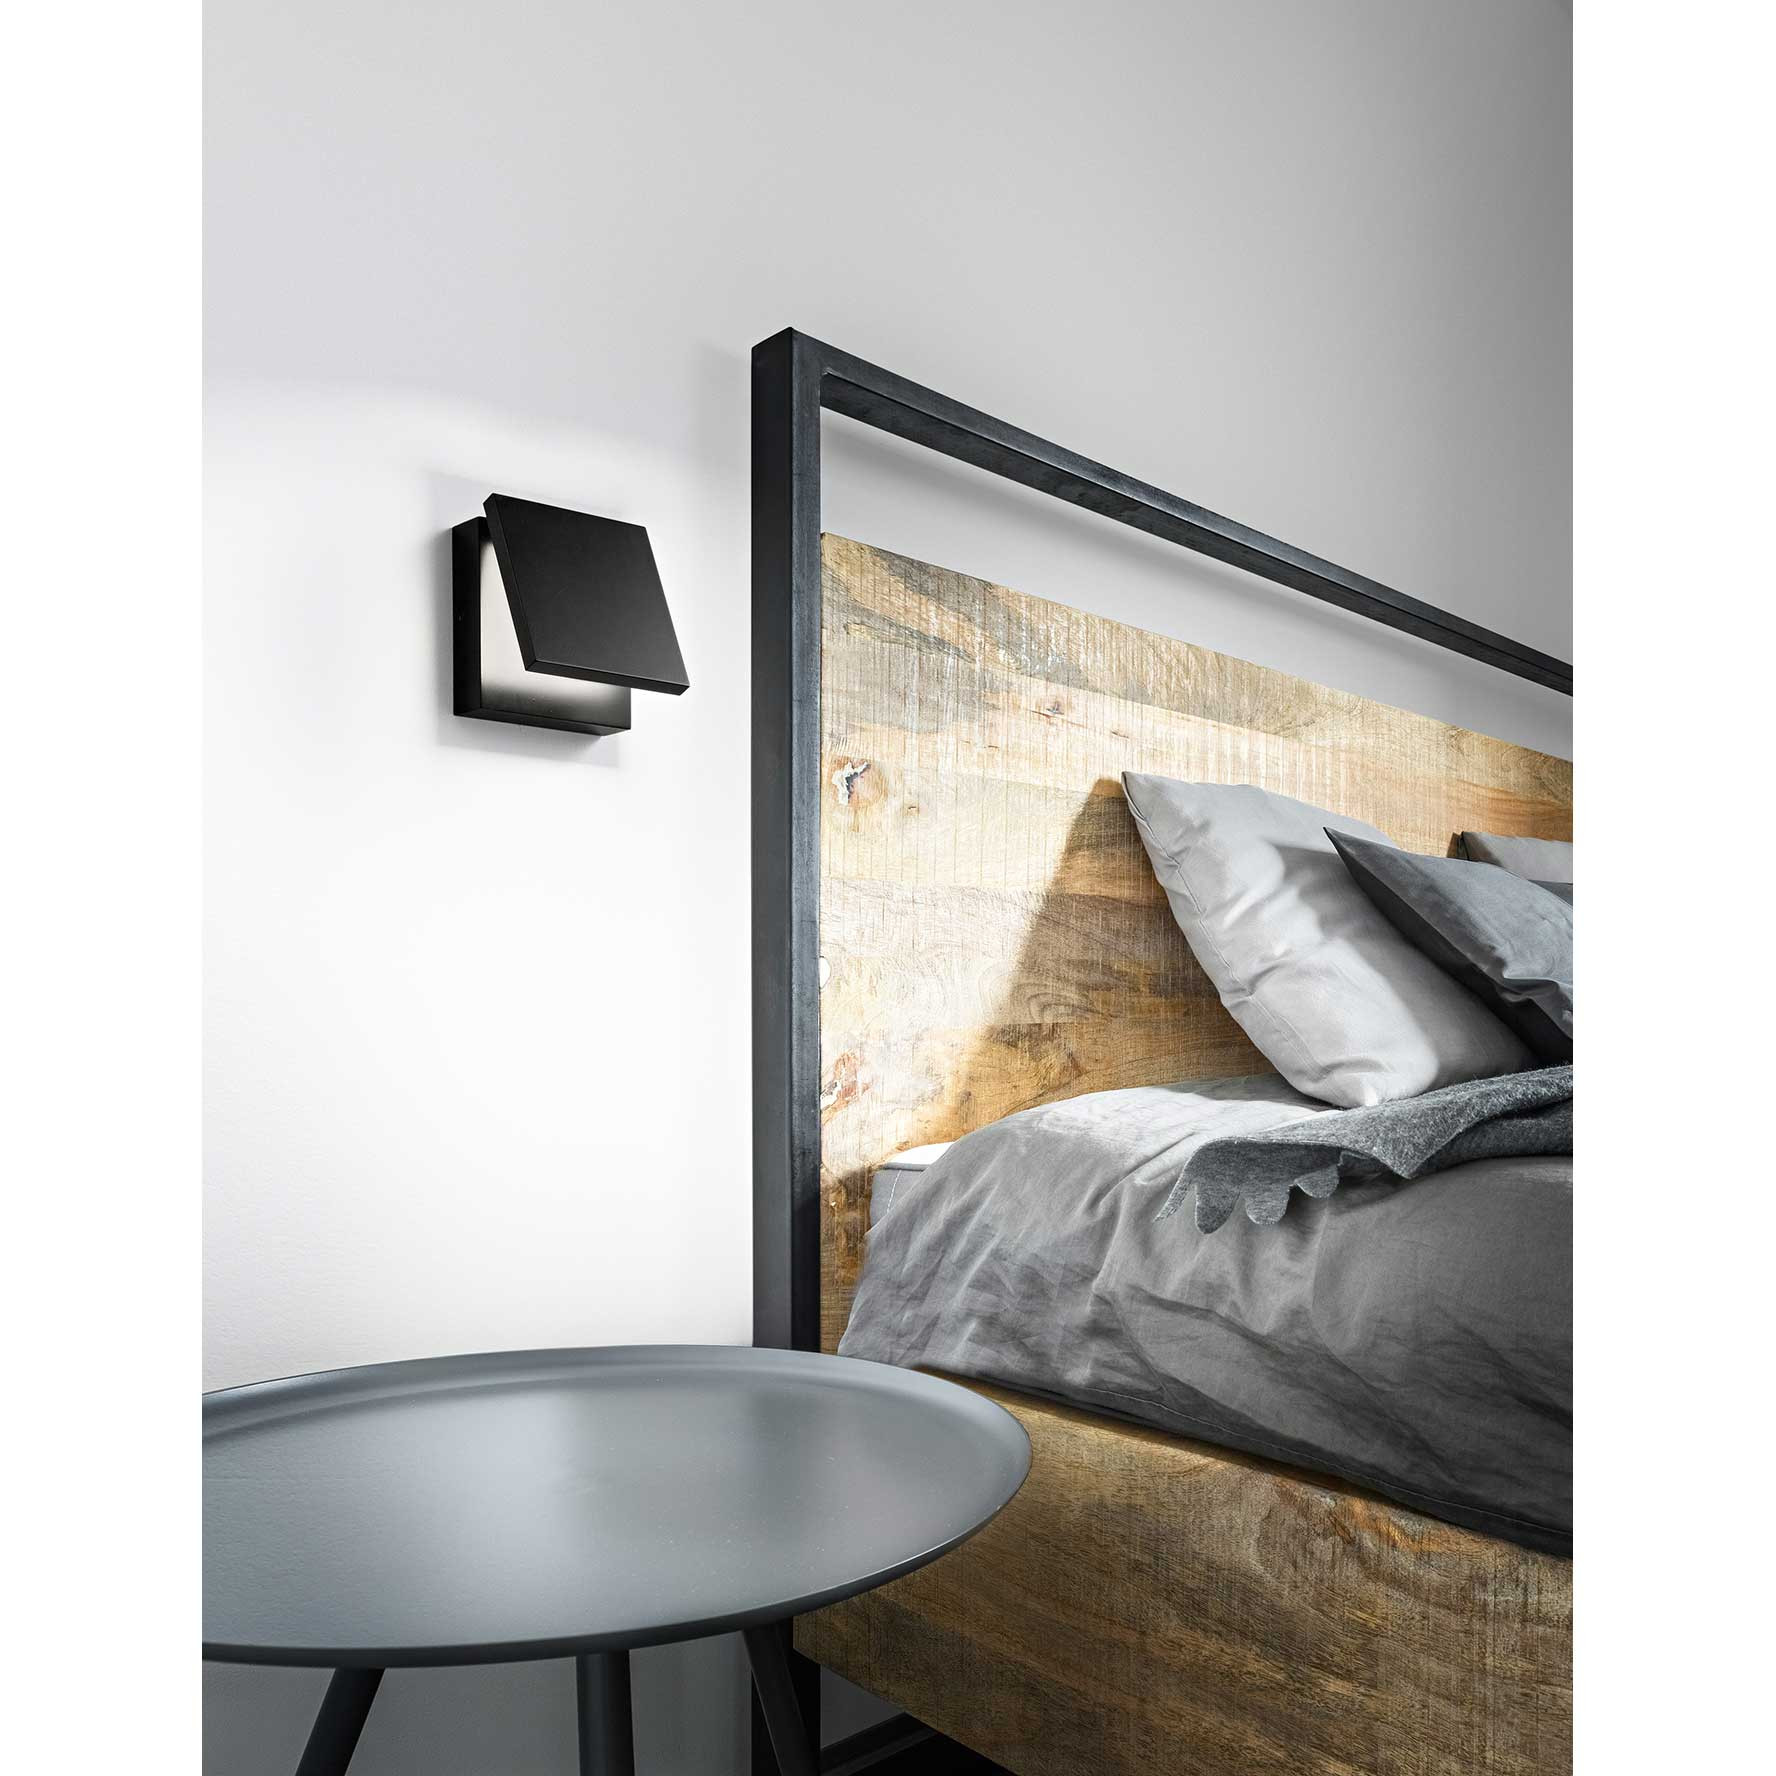 Applique Per Camera Da Letto.Perenz Applique A Led Per Camera Da Letto Regolabile Secret